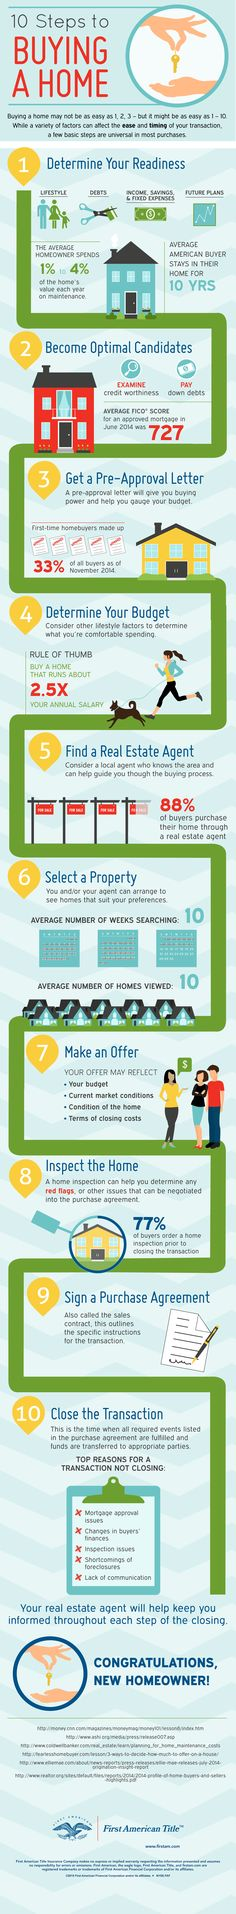 How Do I Write a Lease Purchase Agreement? - home purchase agreement